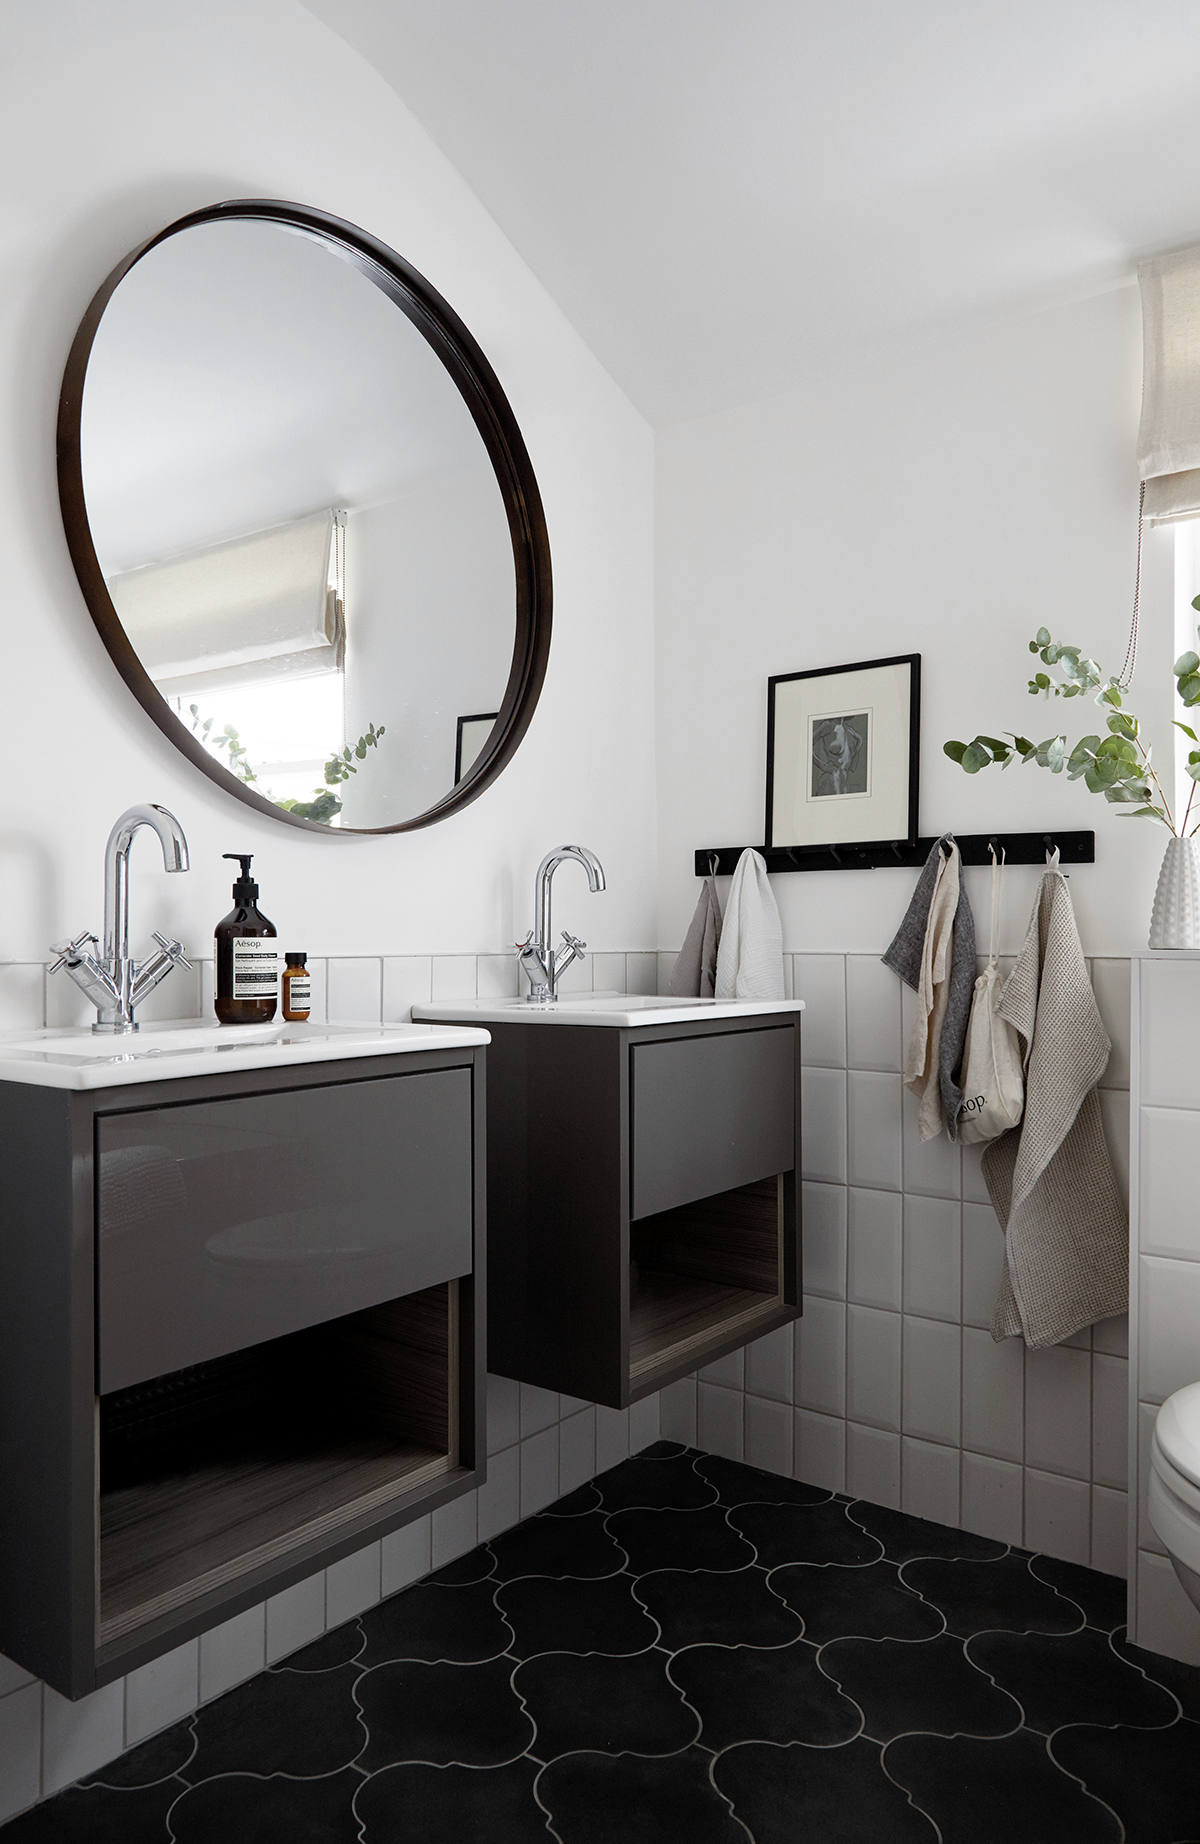 Black And White Monochrome Bathroom With Subway Tiles Round Mirror Home Of Rebecca Wakefield